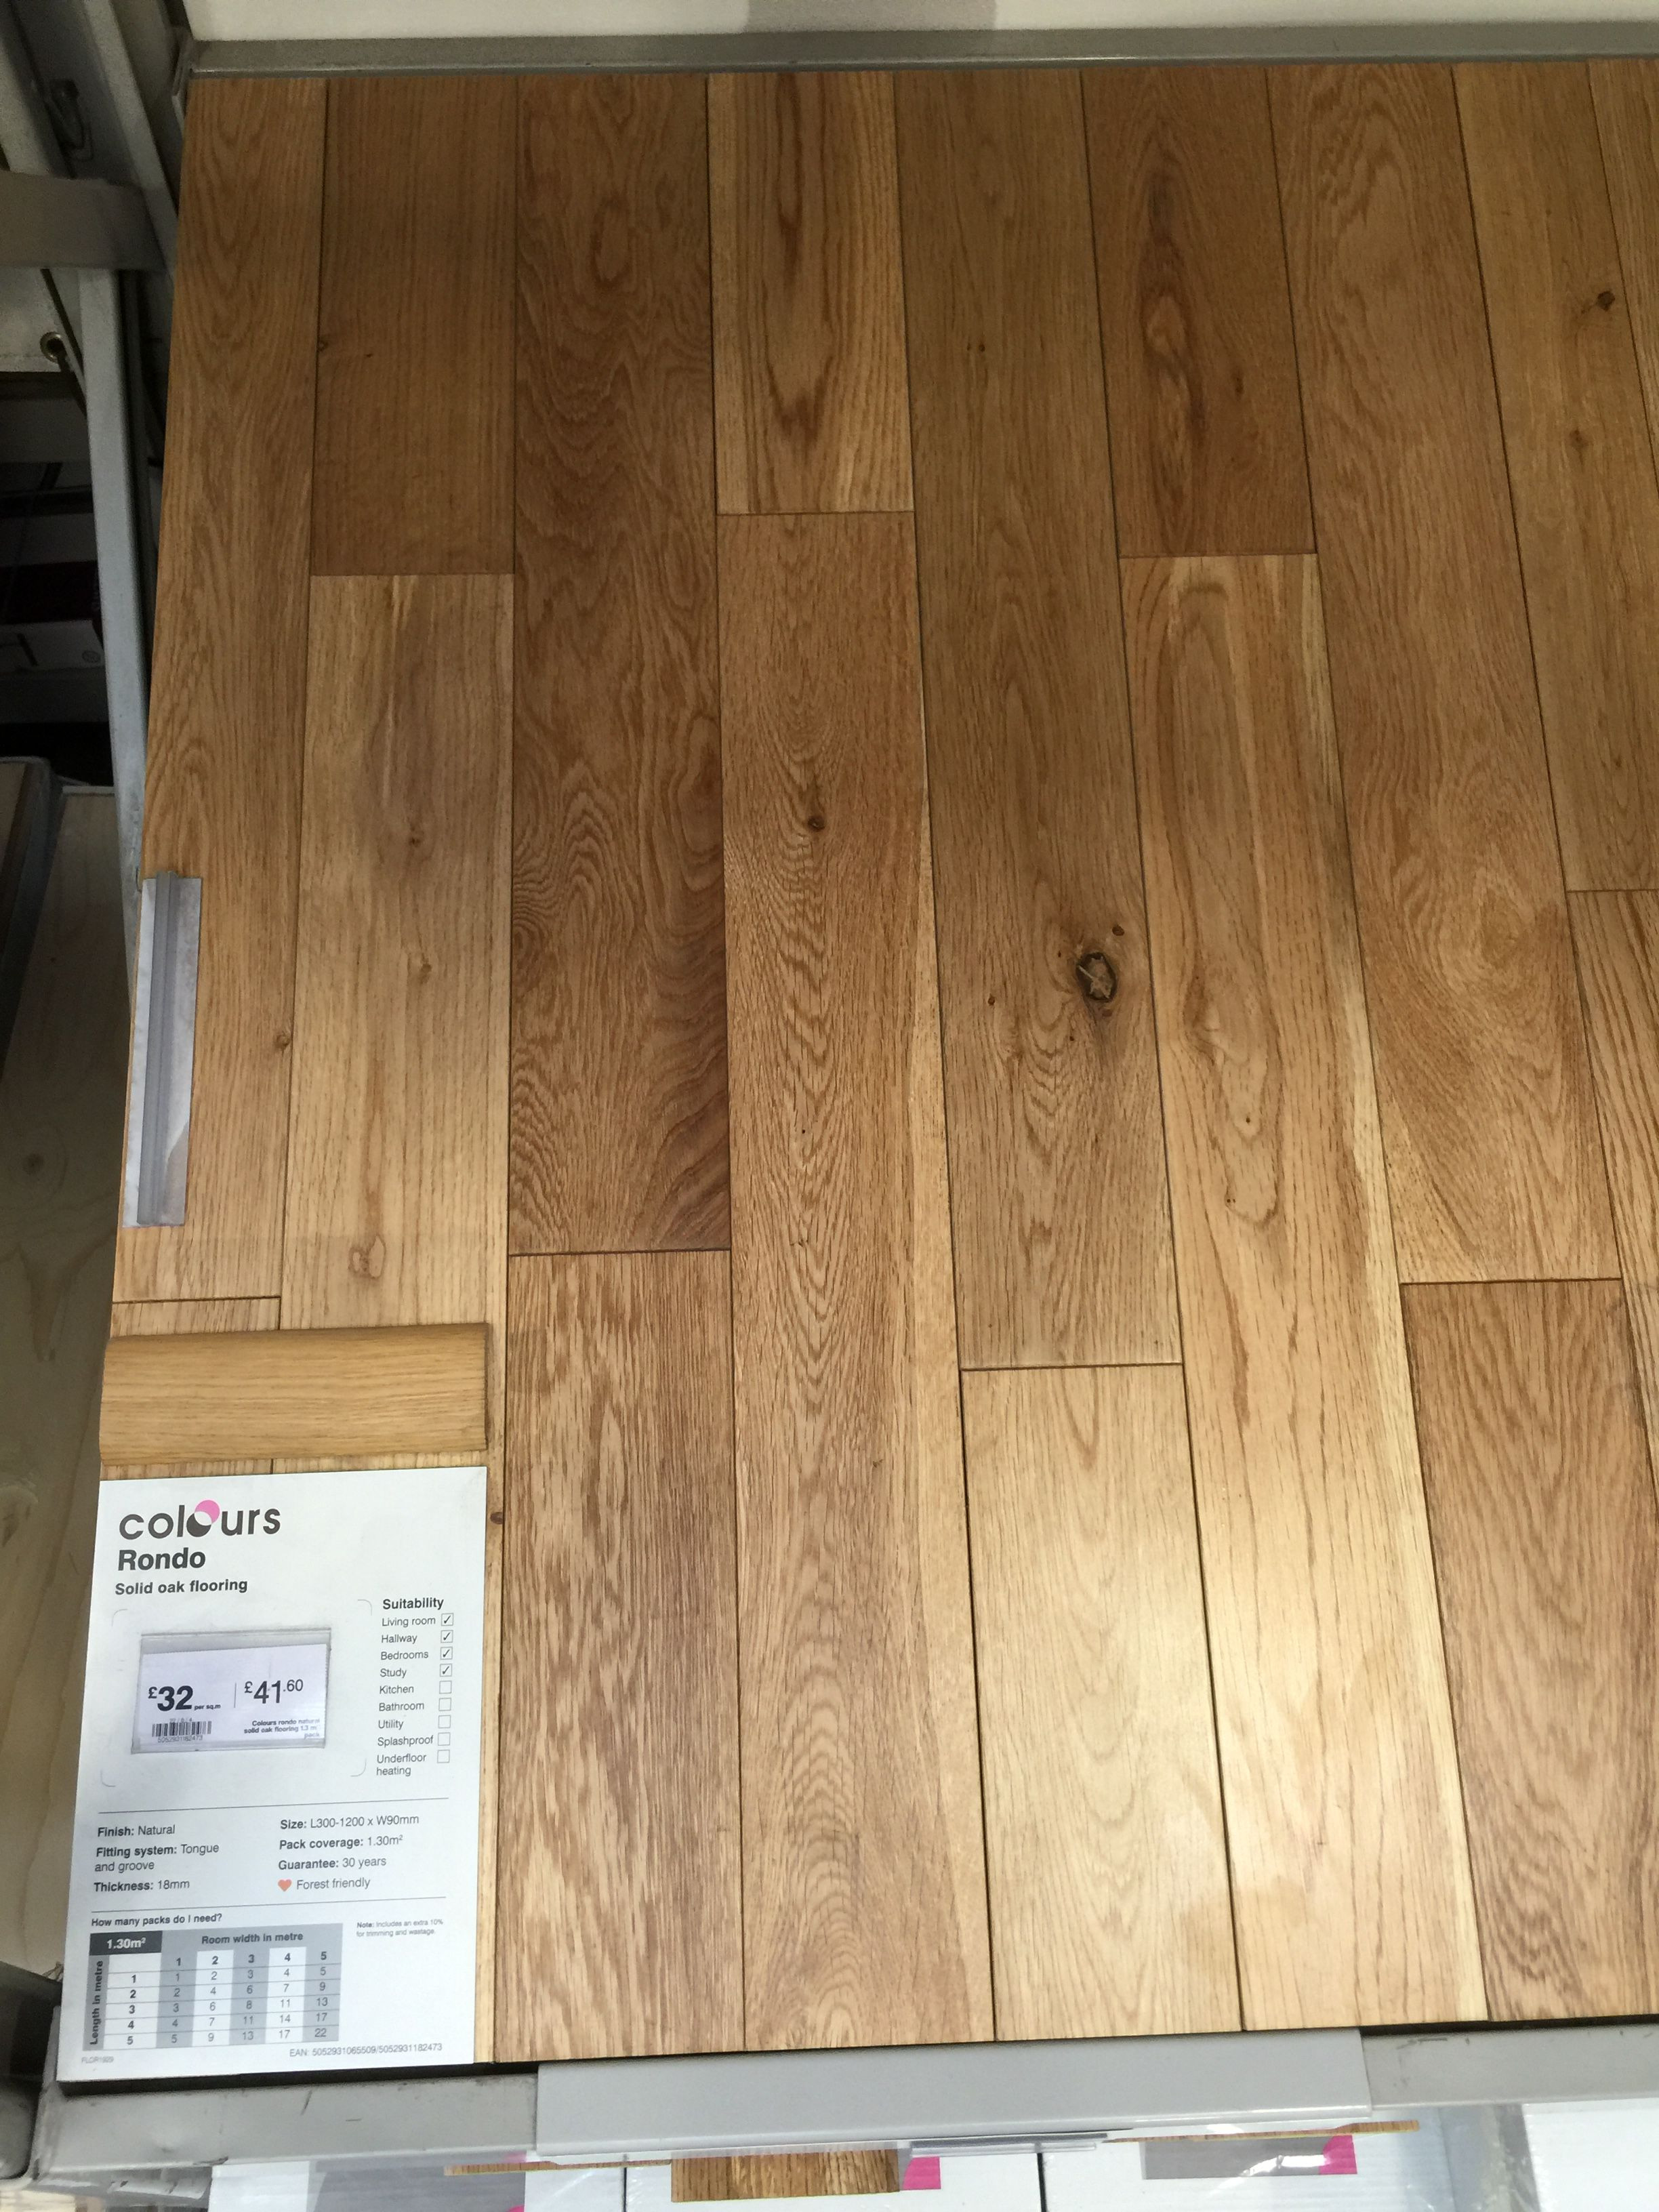 bq hardwood flooring of pin by steven lewis on new office pinterest with regard to bq